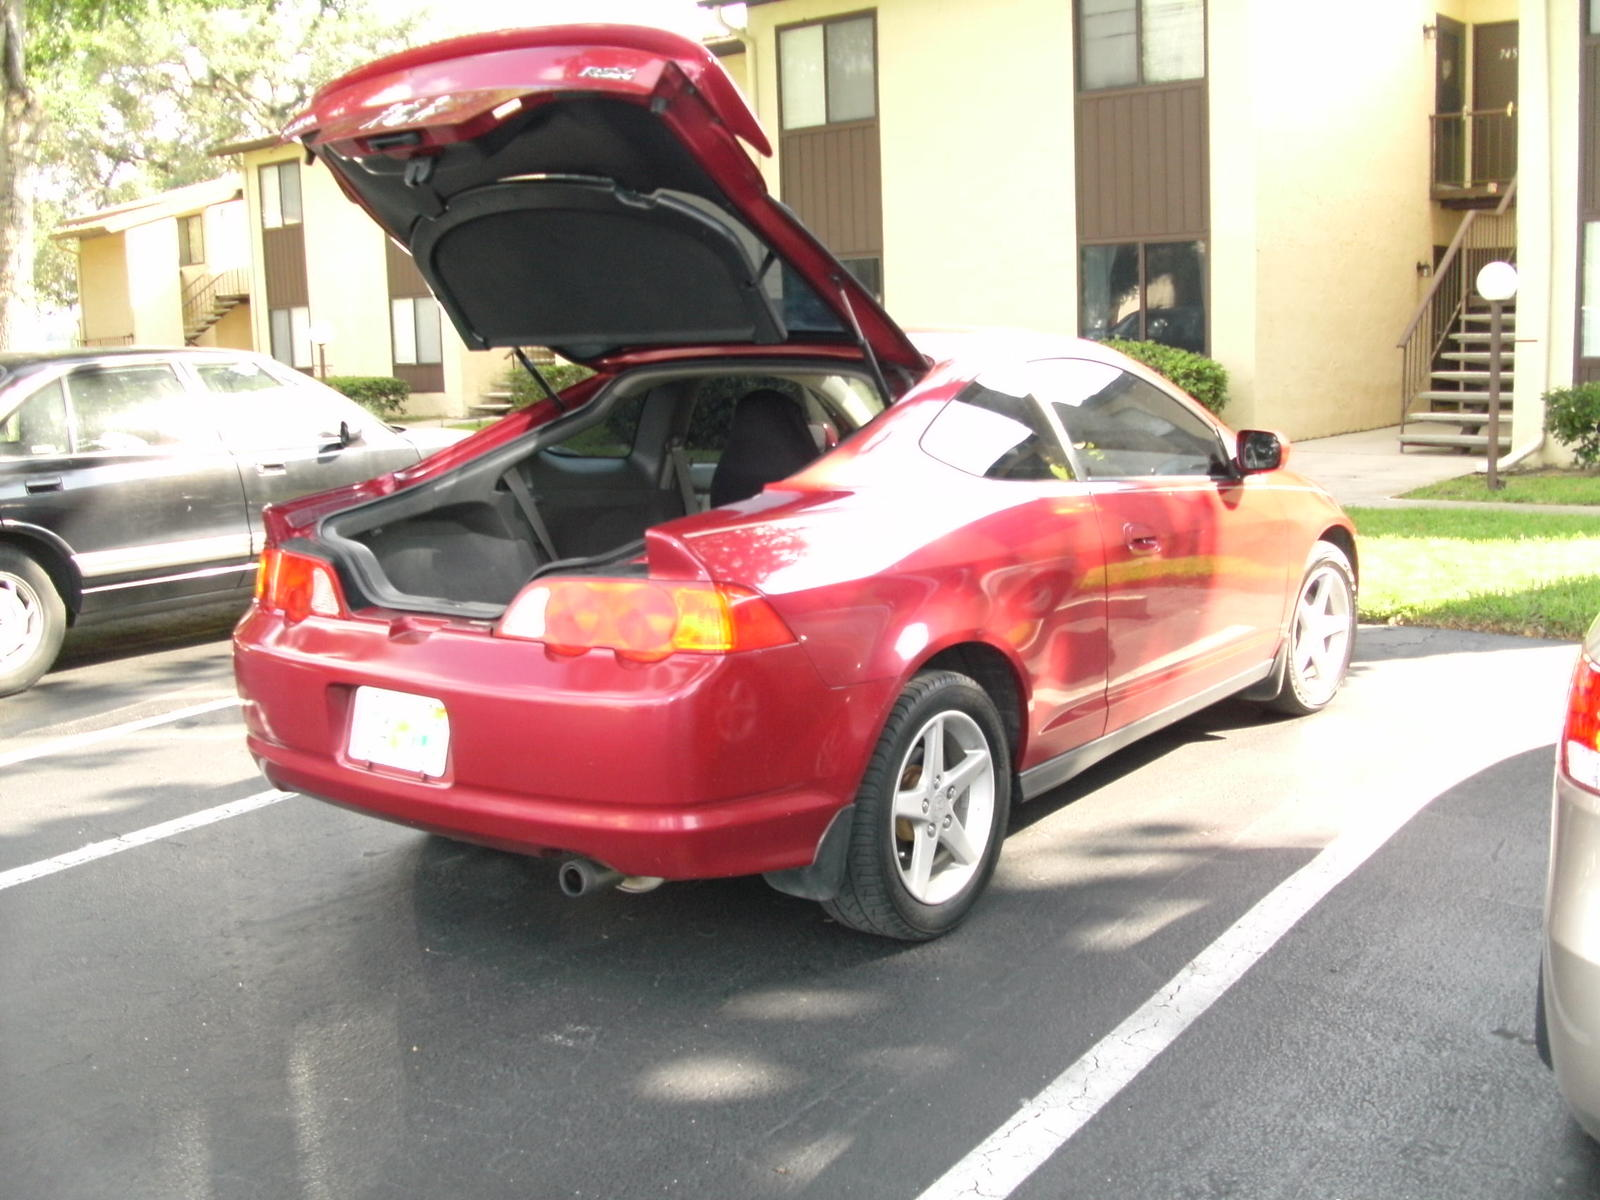 2002 Acura Rsx Information And Photos Zombiedrive Mdx Transmission 9